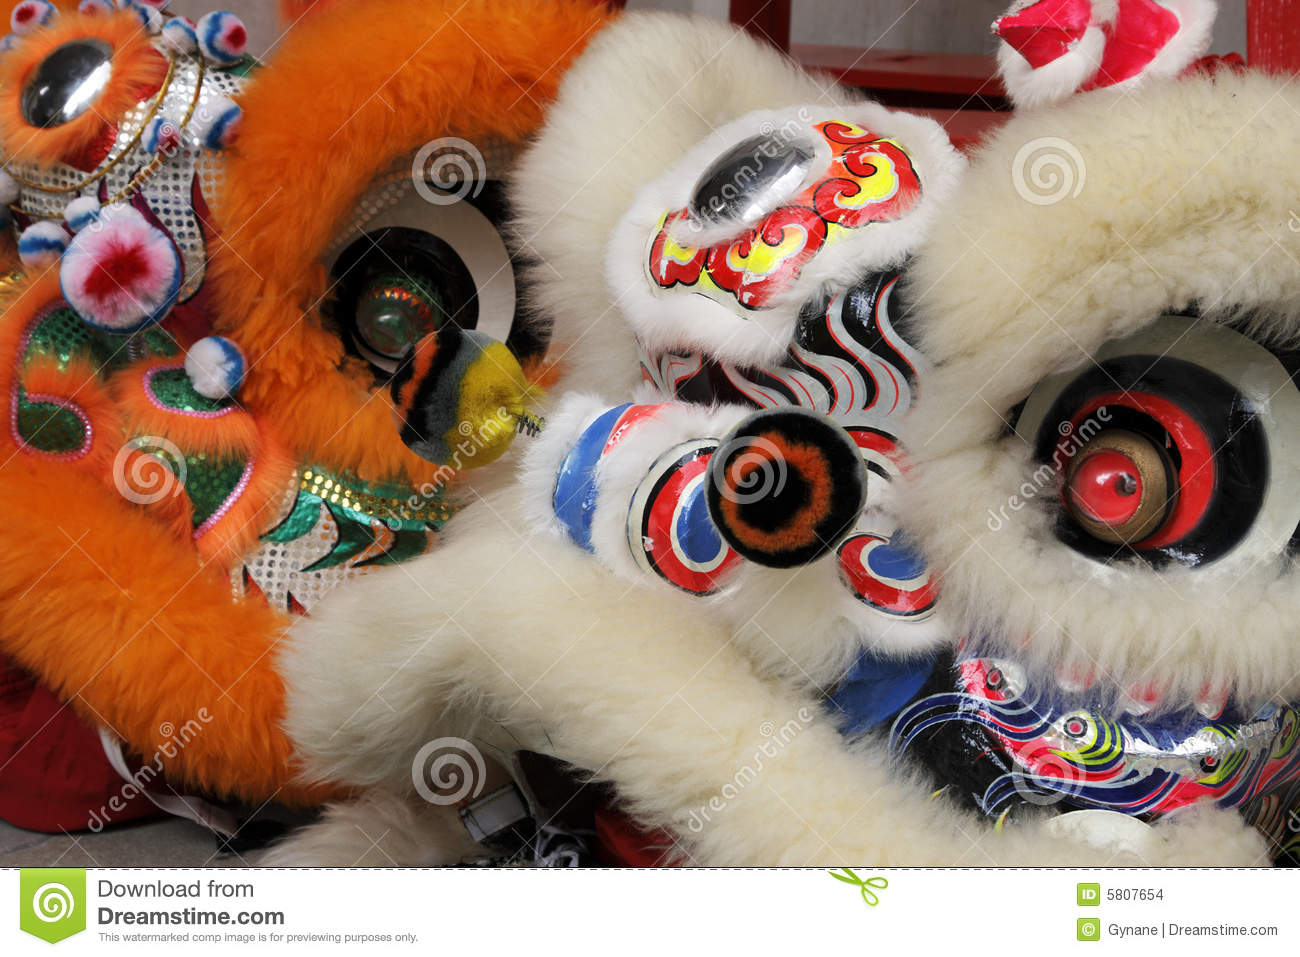 Download Close Up Of A Chinese Dragon Head Costume Stock Photo - Image of vibrant, dragon: 5807654